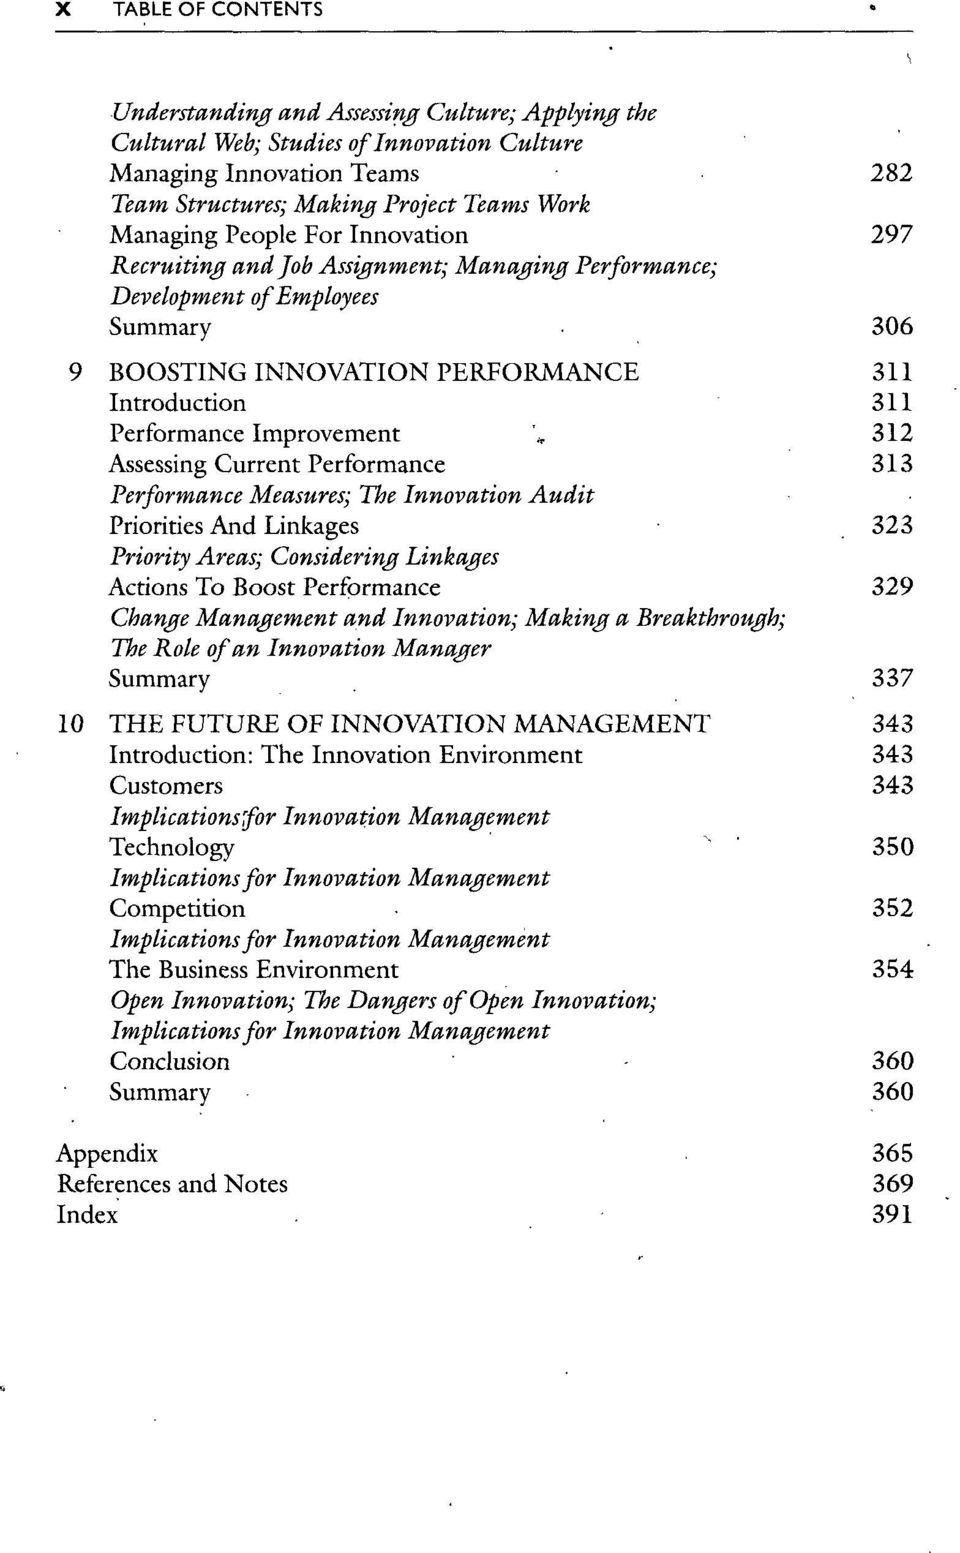 Assessing Current Performance 313 Performance Measures; The Innovation Audit Priorities And Linkages 323 Priority Areas; Considering Linkages Actions To Boost Performance 329 Change Management and